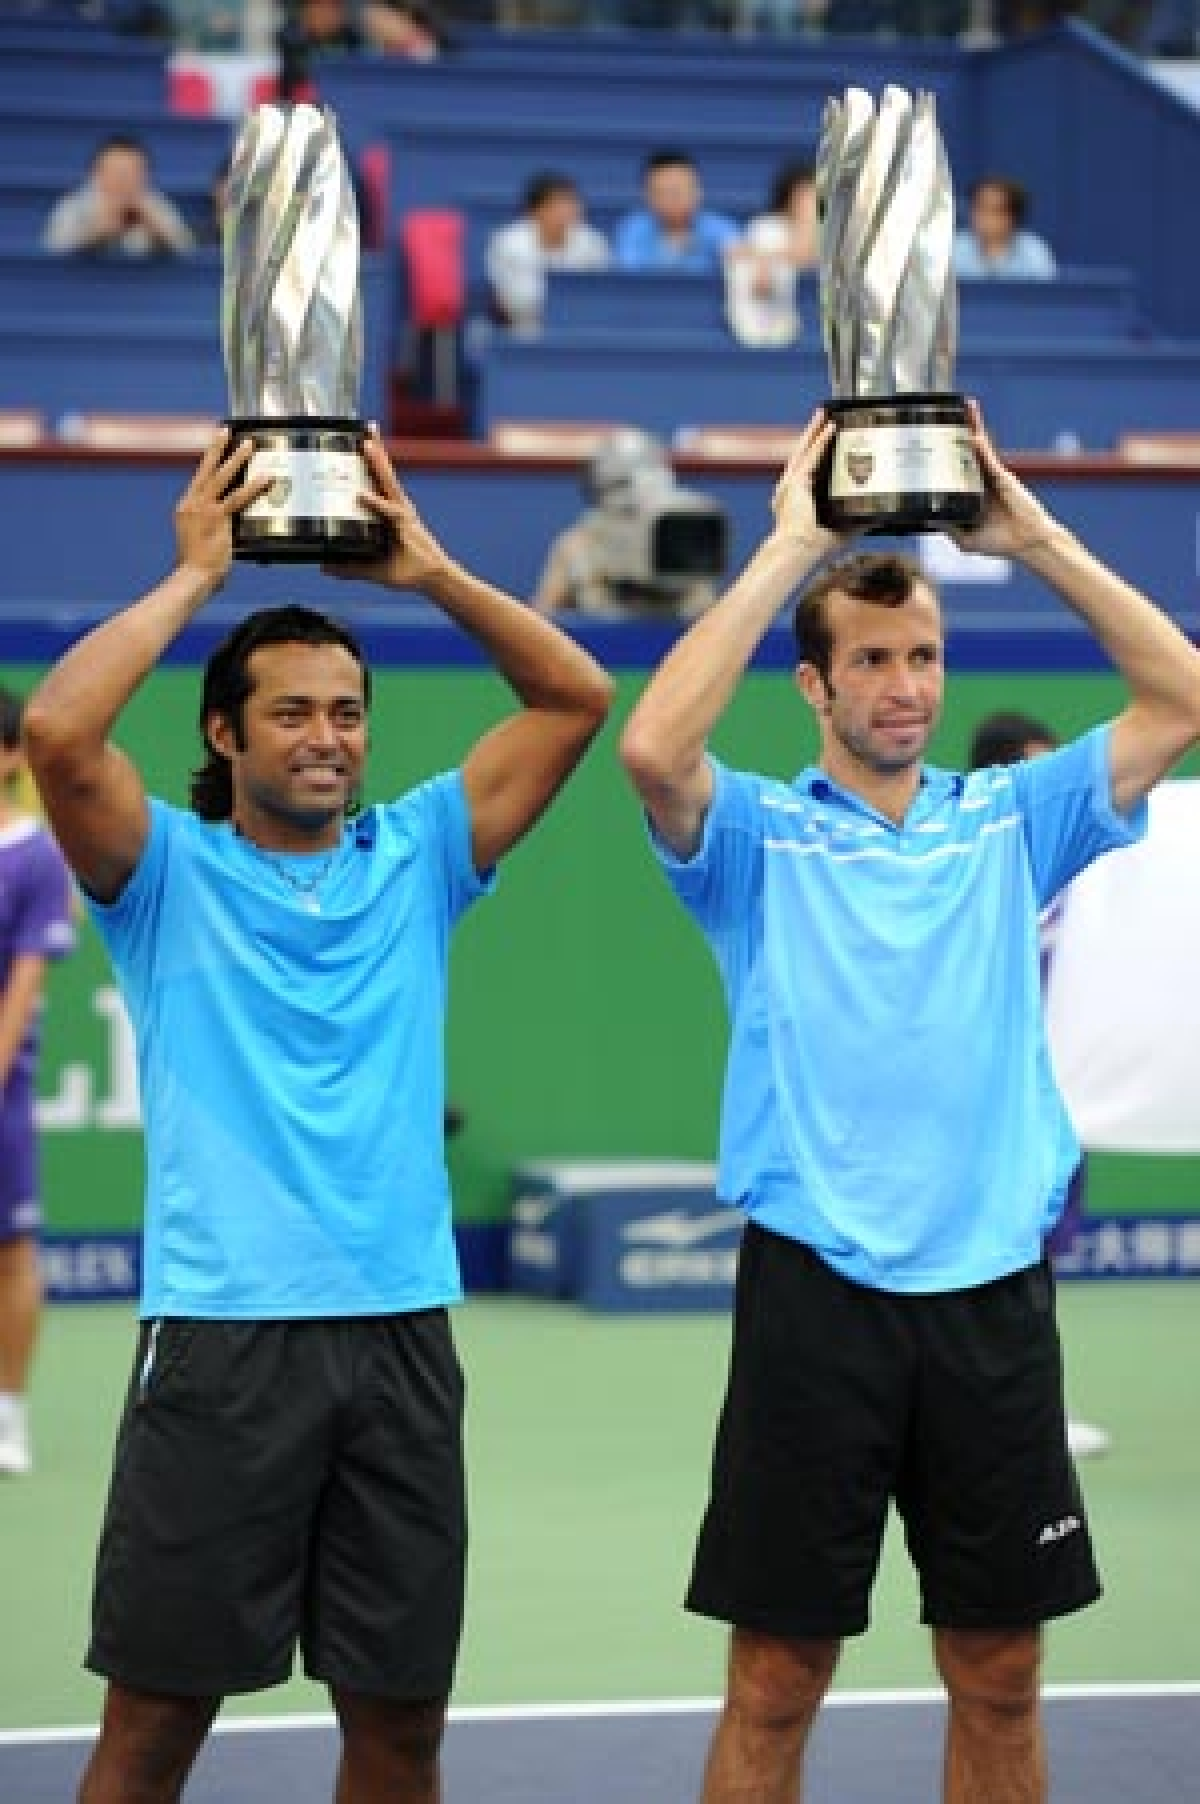 Leander Paes of India and Radek Stepanek of the Czech Republic hold their trophies after beating Mahesh Bhupathi and Rohan Bopanna of India in the doubles final of the Shanghai Masters tennis tournament in Shanghai on Sunday.